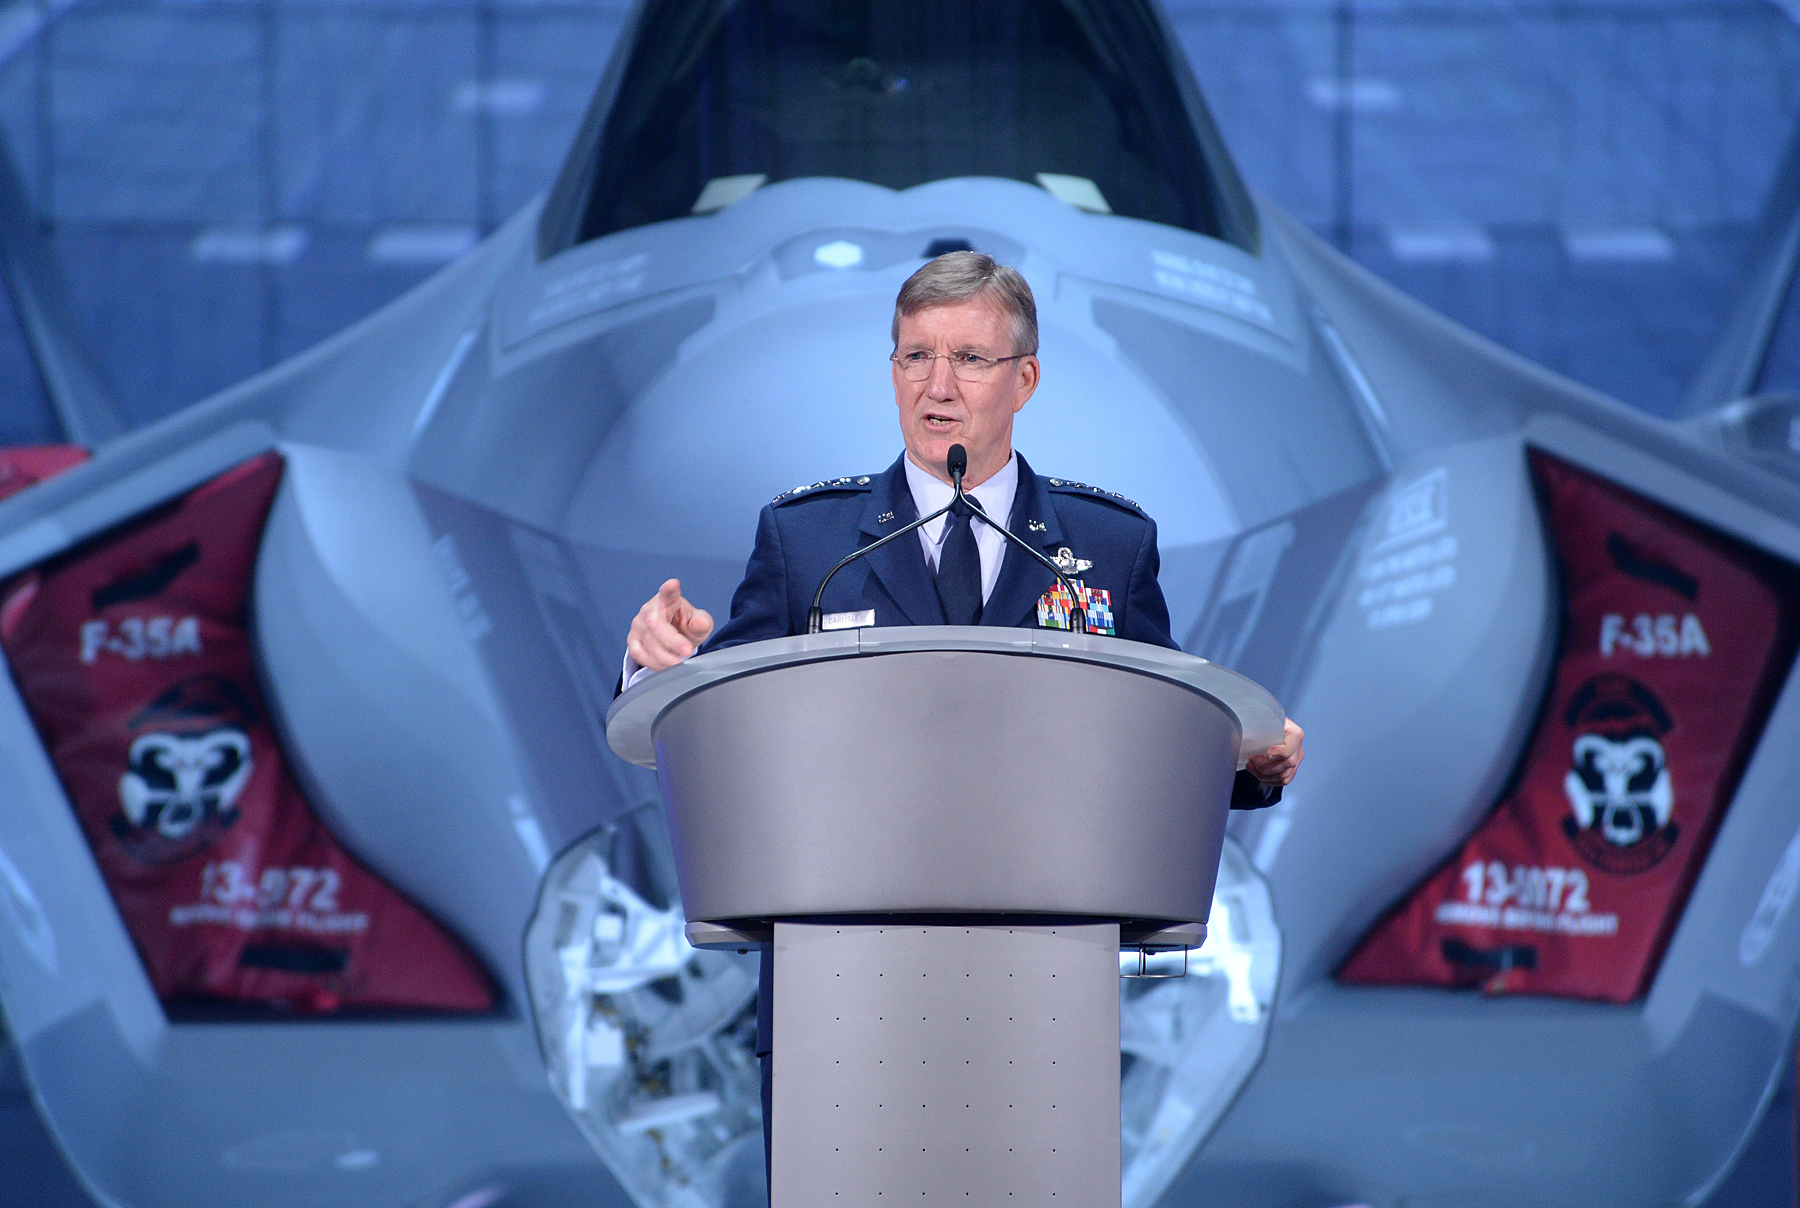 U.S. Air Force Gen. Hawk Carlisle, commander of Air Combat Command, speaks at the arrival ceremony for the F-35 Lightning II at Hill Air Force Base, Utah Oct. 14, 2015 | U.S. Air Force photo by R. Nial Bradshaw, St. George News